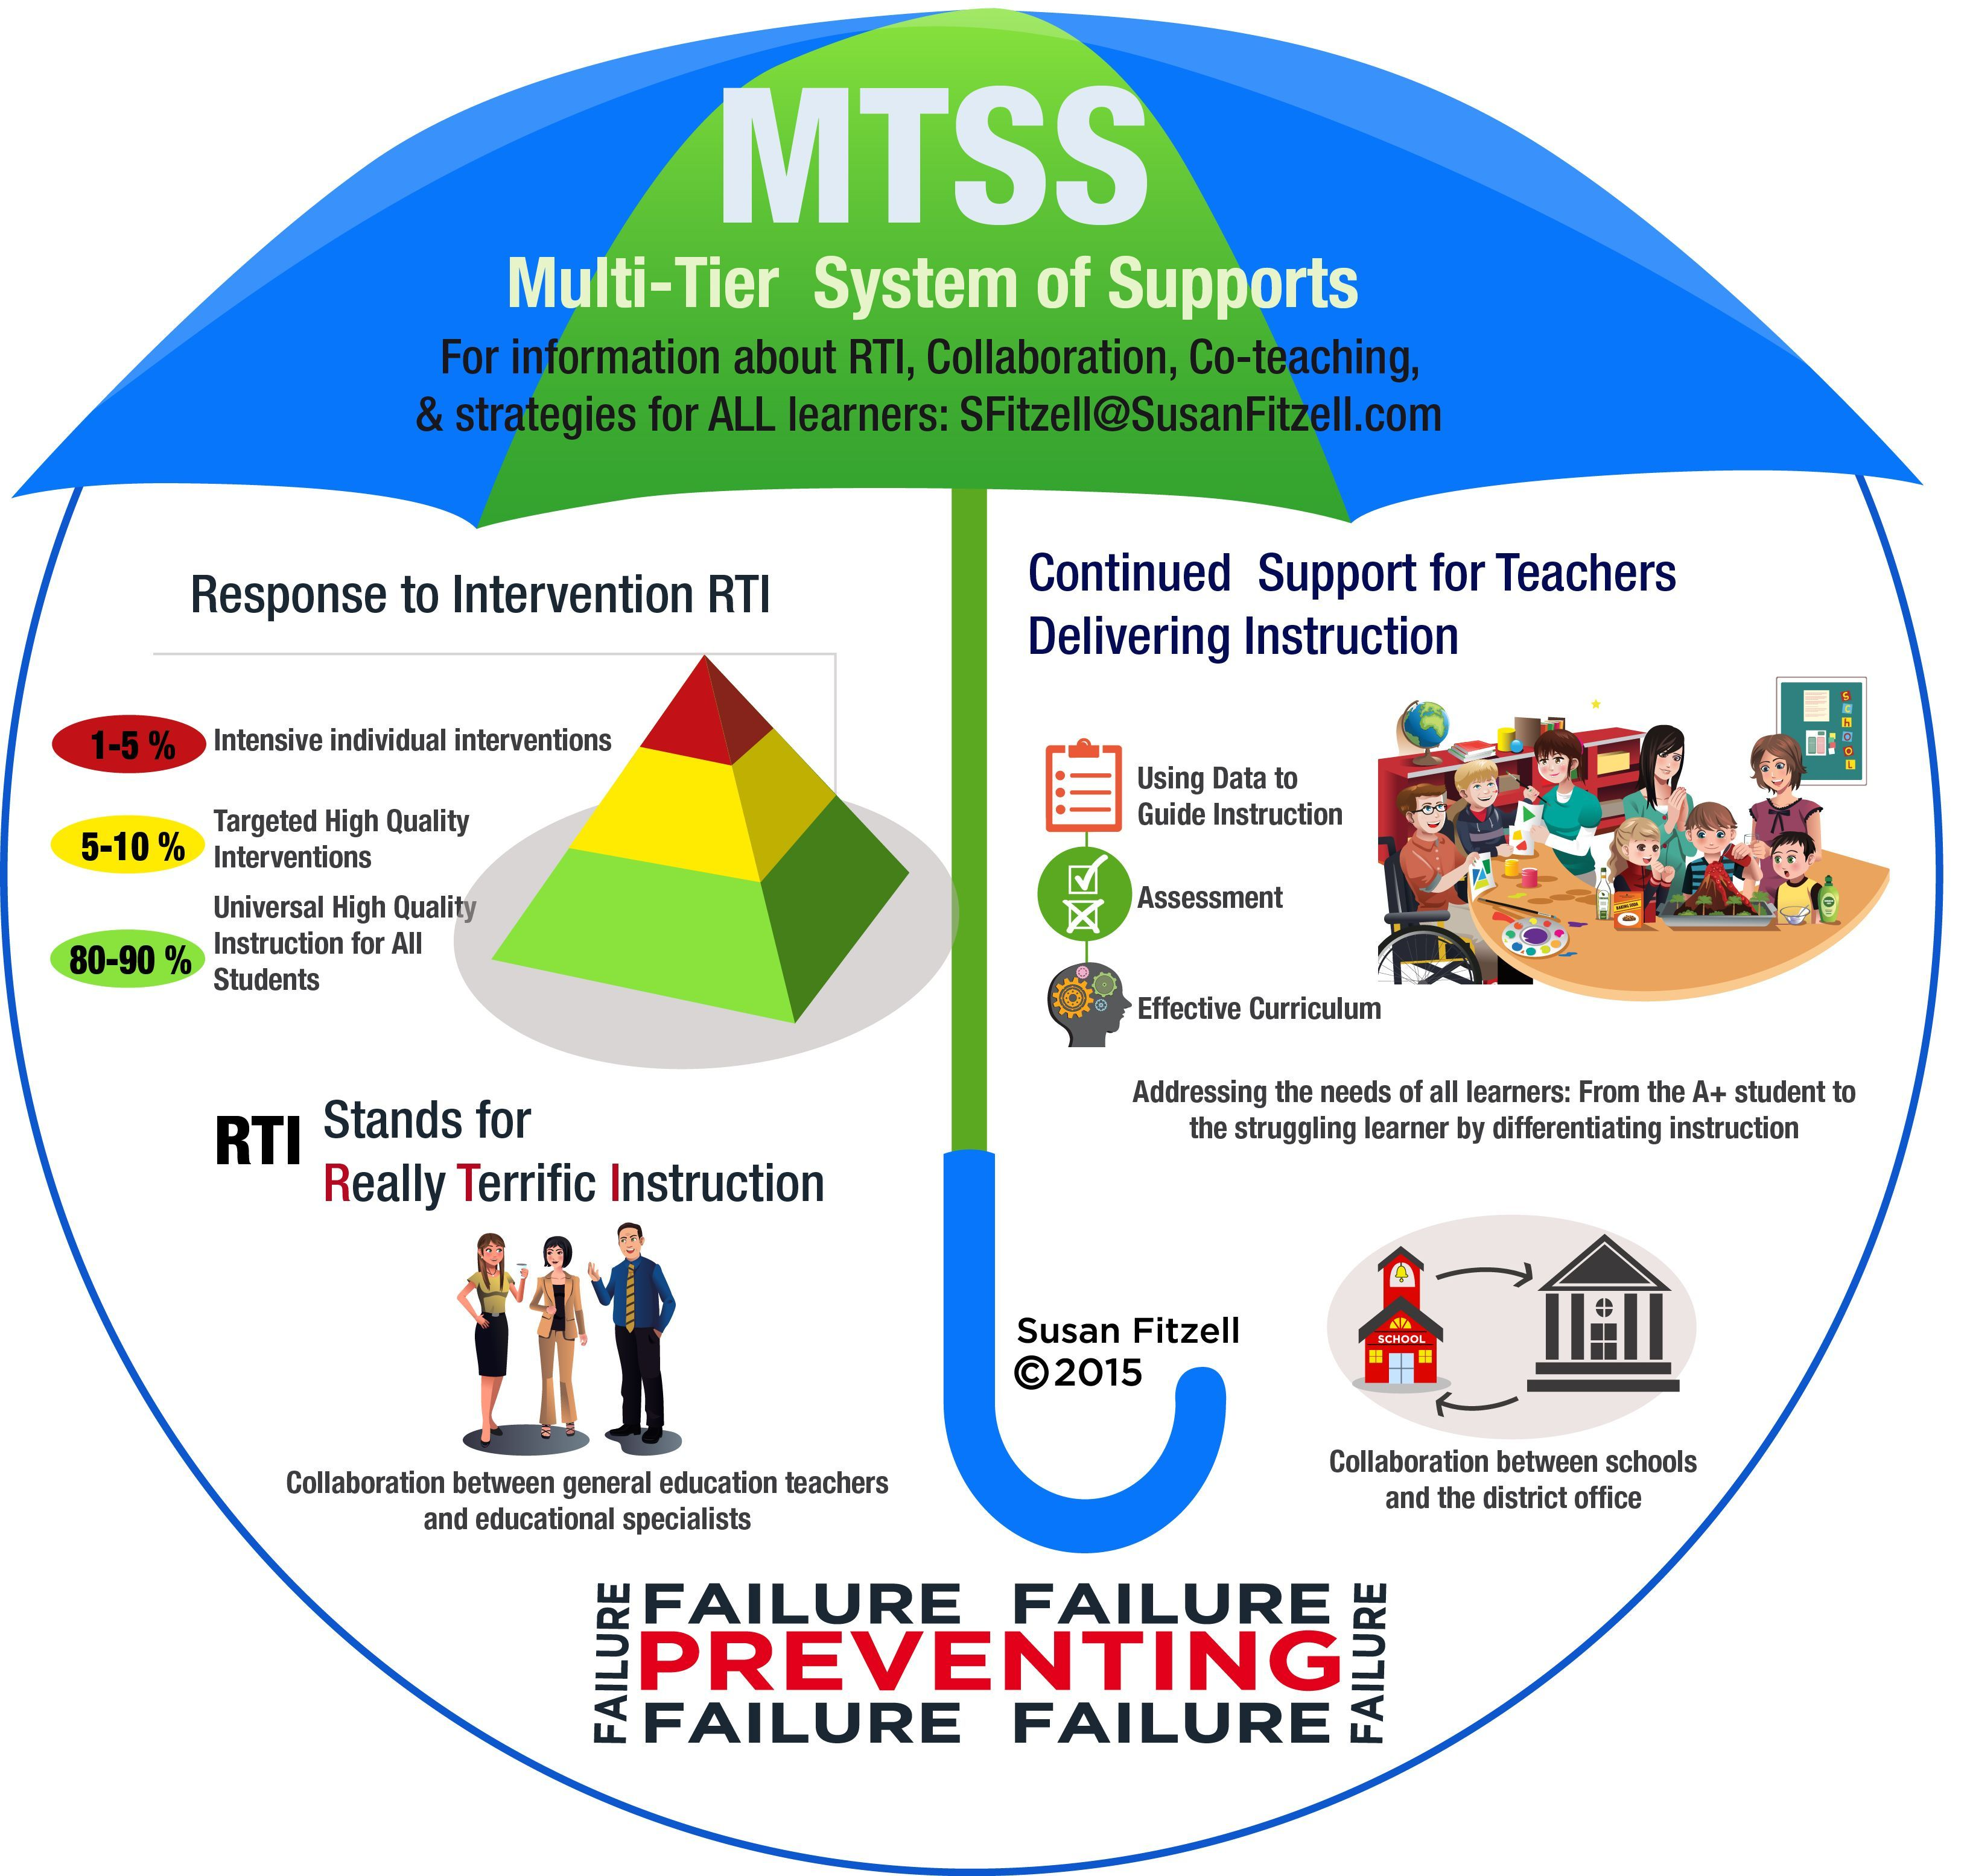 MTSS How RTI, Collaboration, Coteaching, and